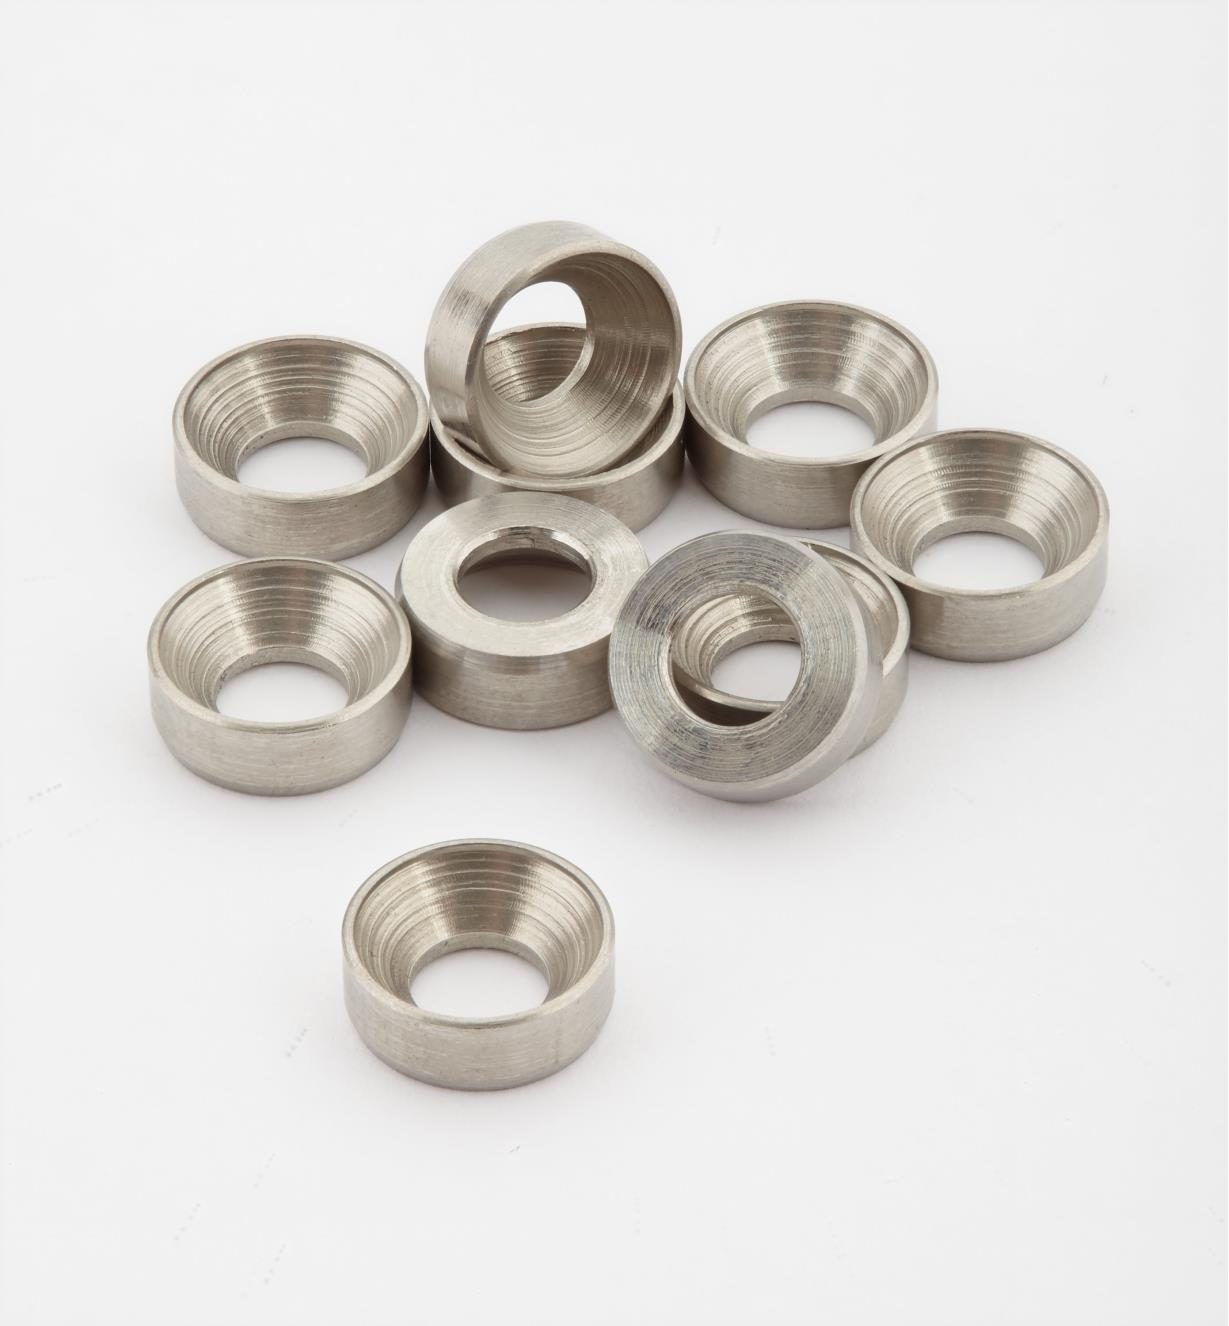 01K7053 - #10 Stainless Steel Washers, pkg. of 10